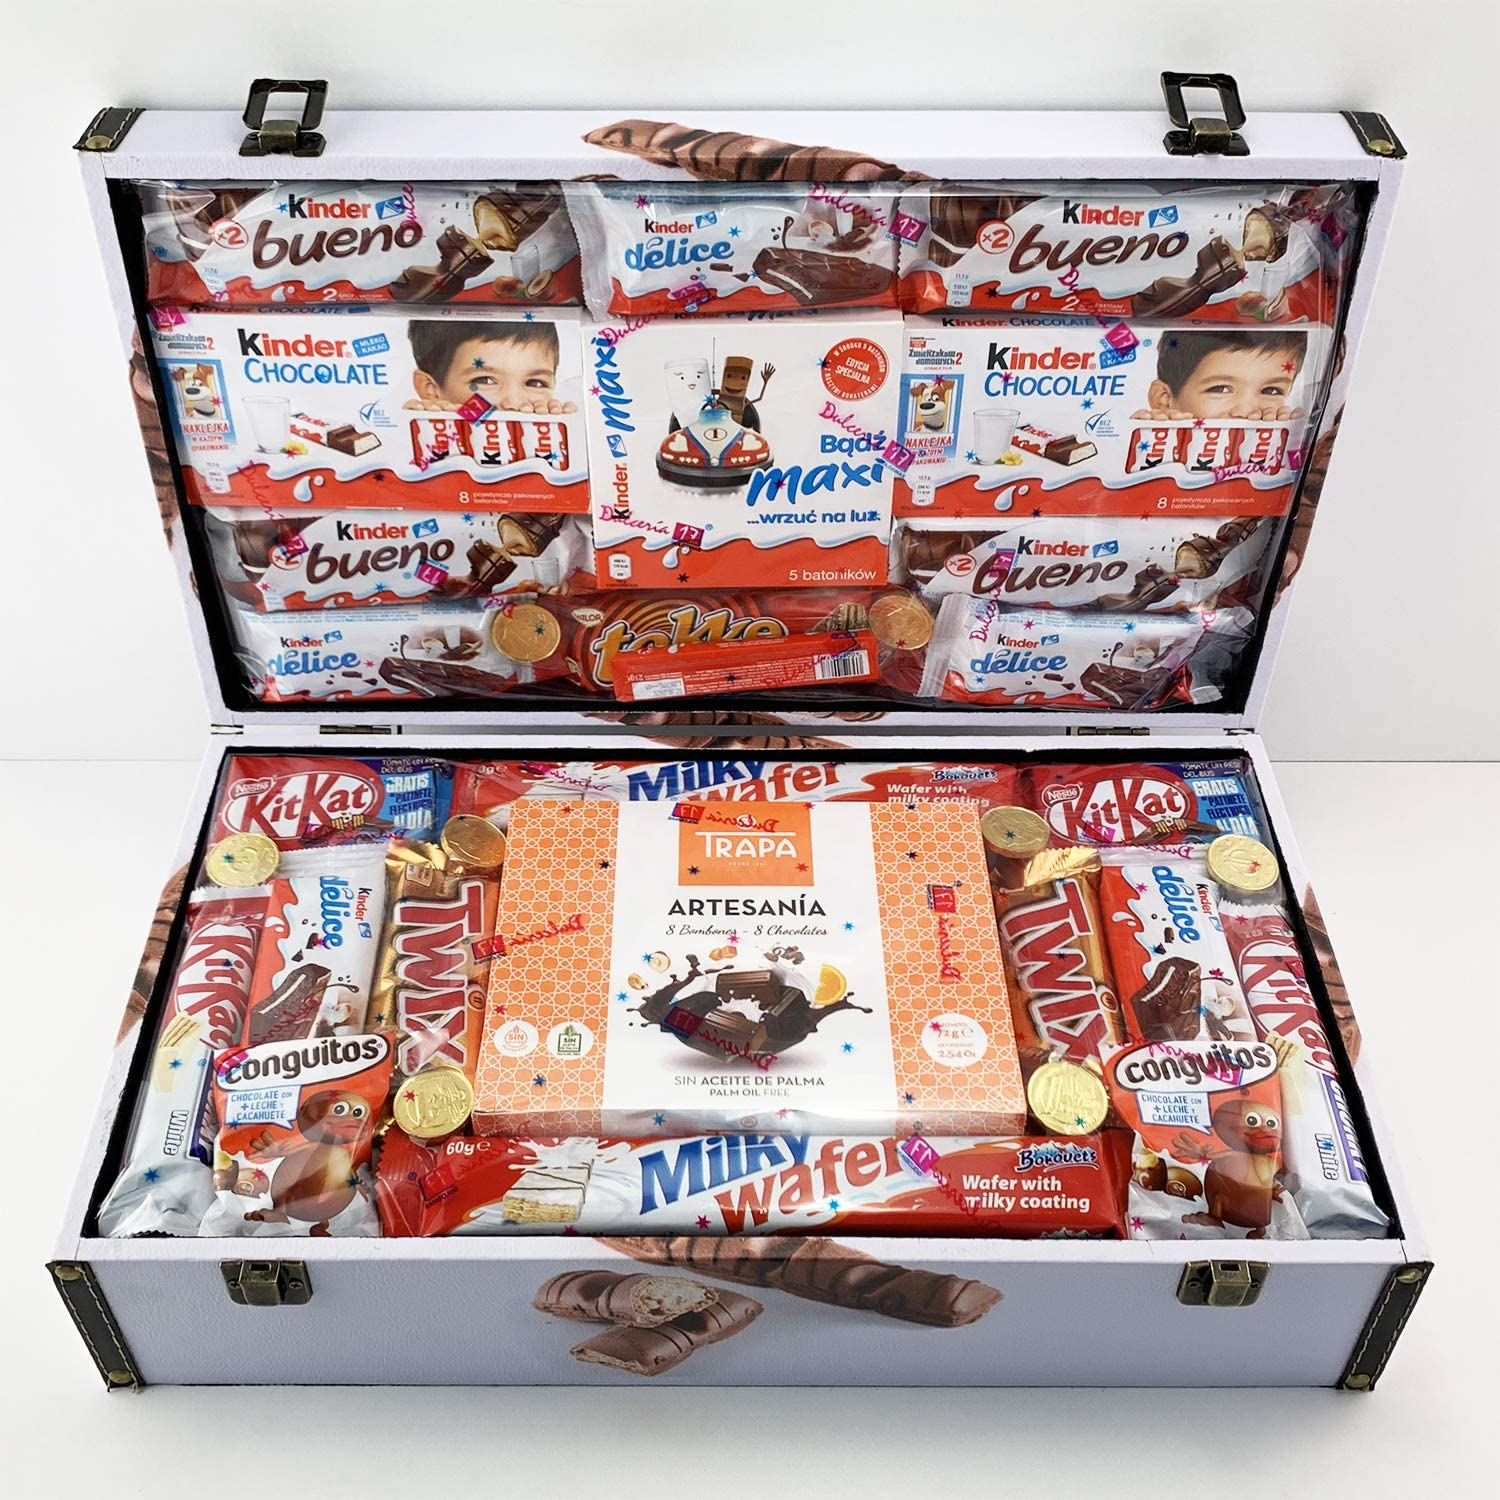 Cofre Regalo Kinder Grande - Kinder Bueno Tokke Kinder Chocolate Maxi Kit Kat Choco Wafer Conguitos: Amazon.es: Alimentación y bebidas